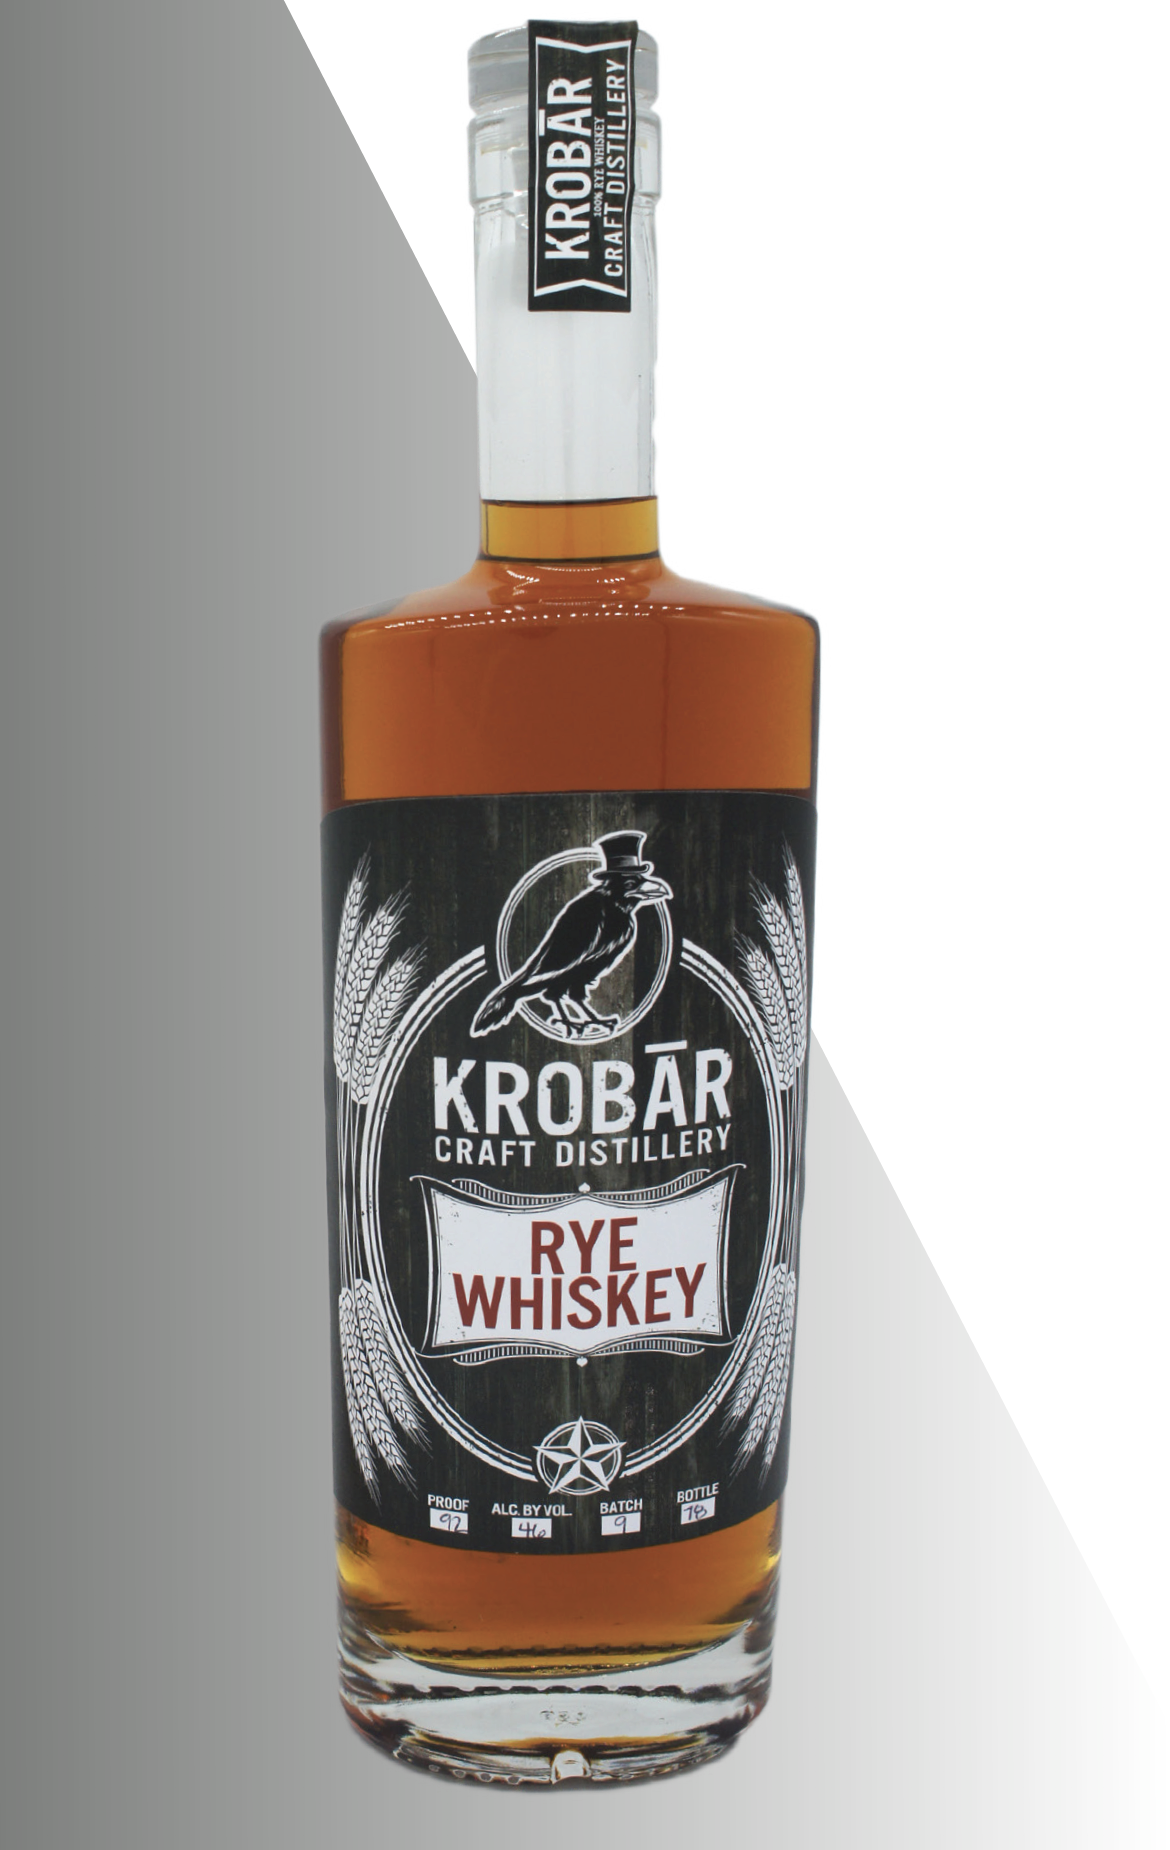 - KROBĀR Rye WhiskeyAfter distillation the Rye was placed in #3 and #4 char American Oak Barrels to rest for 2.5 years. Once the aging process finished, we placed the Rye Whiskey in a tank and cut it down to 92 proof before bottling. 92 Proof / 46% ABVAwards:Distilled Spirits Competition - Best of ClassCalifornia Craft Spirits Competition, Silver Medal